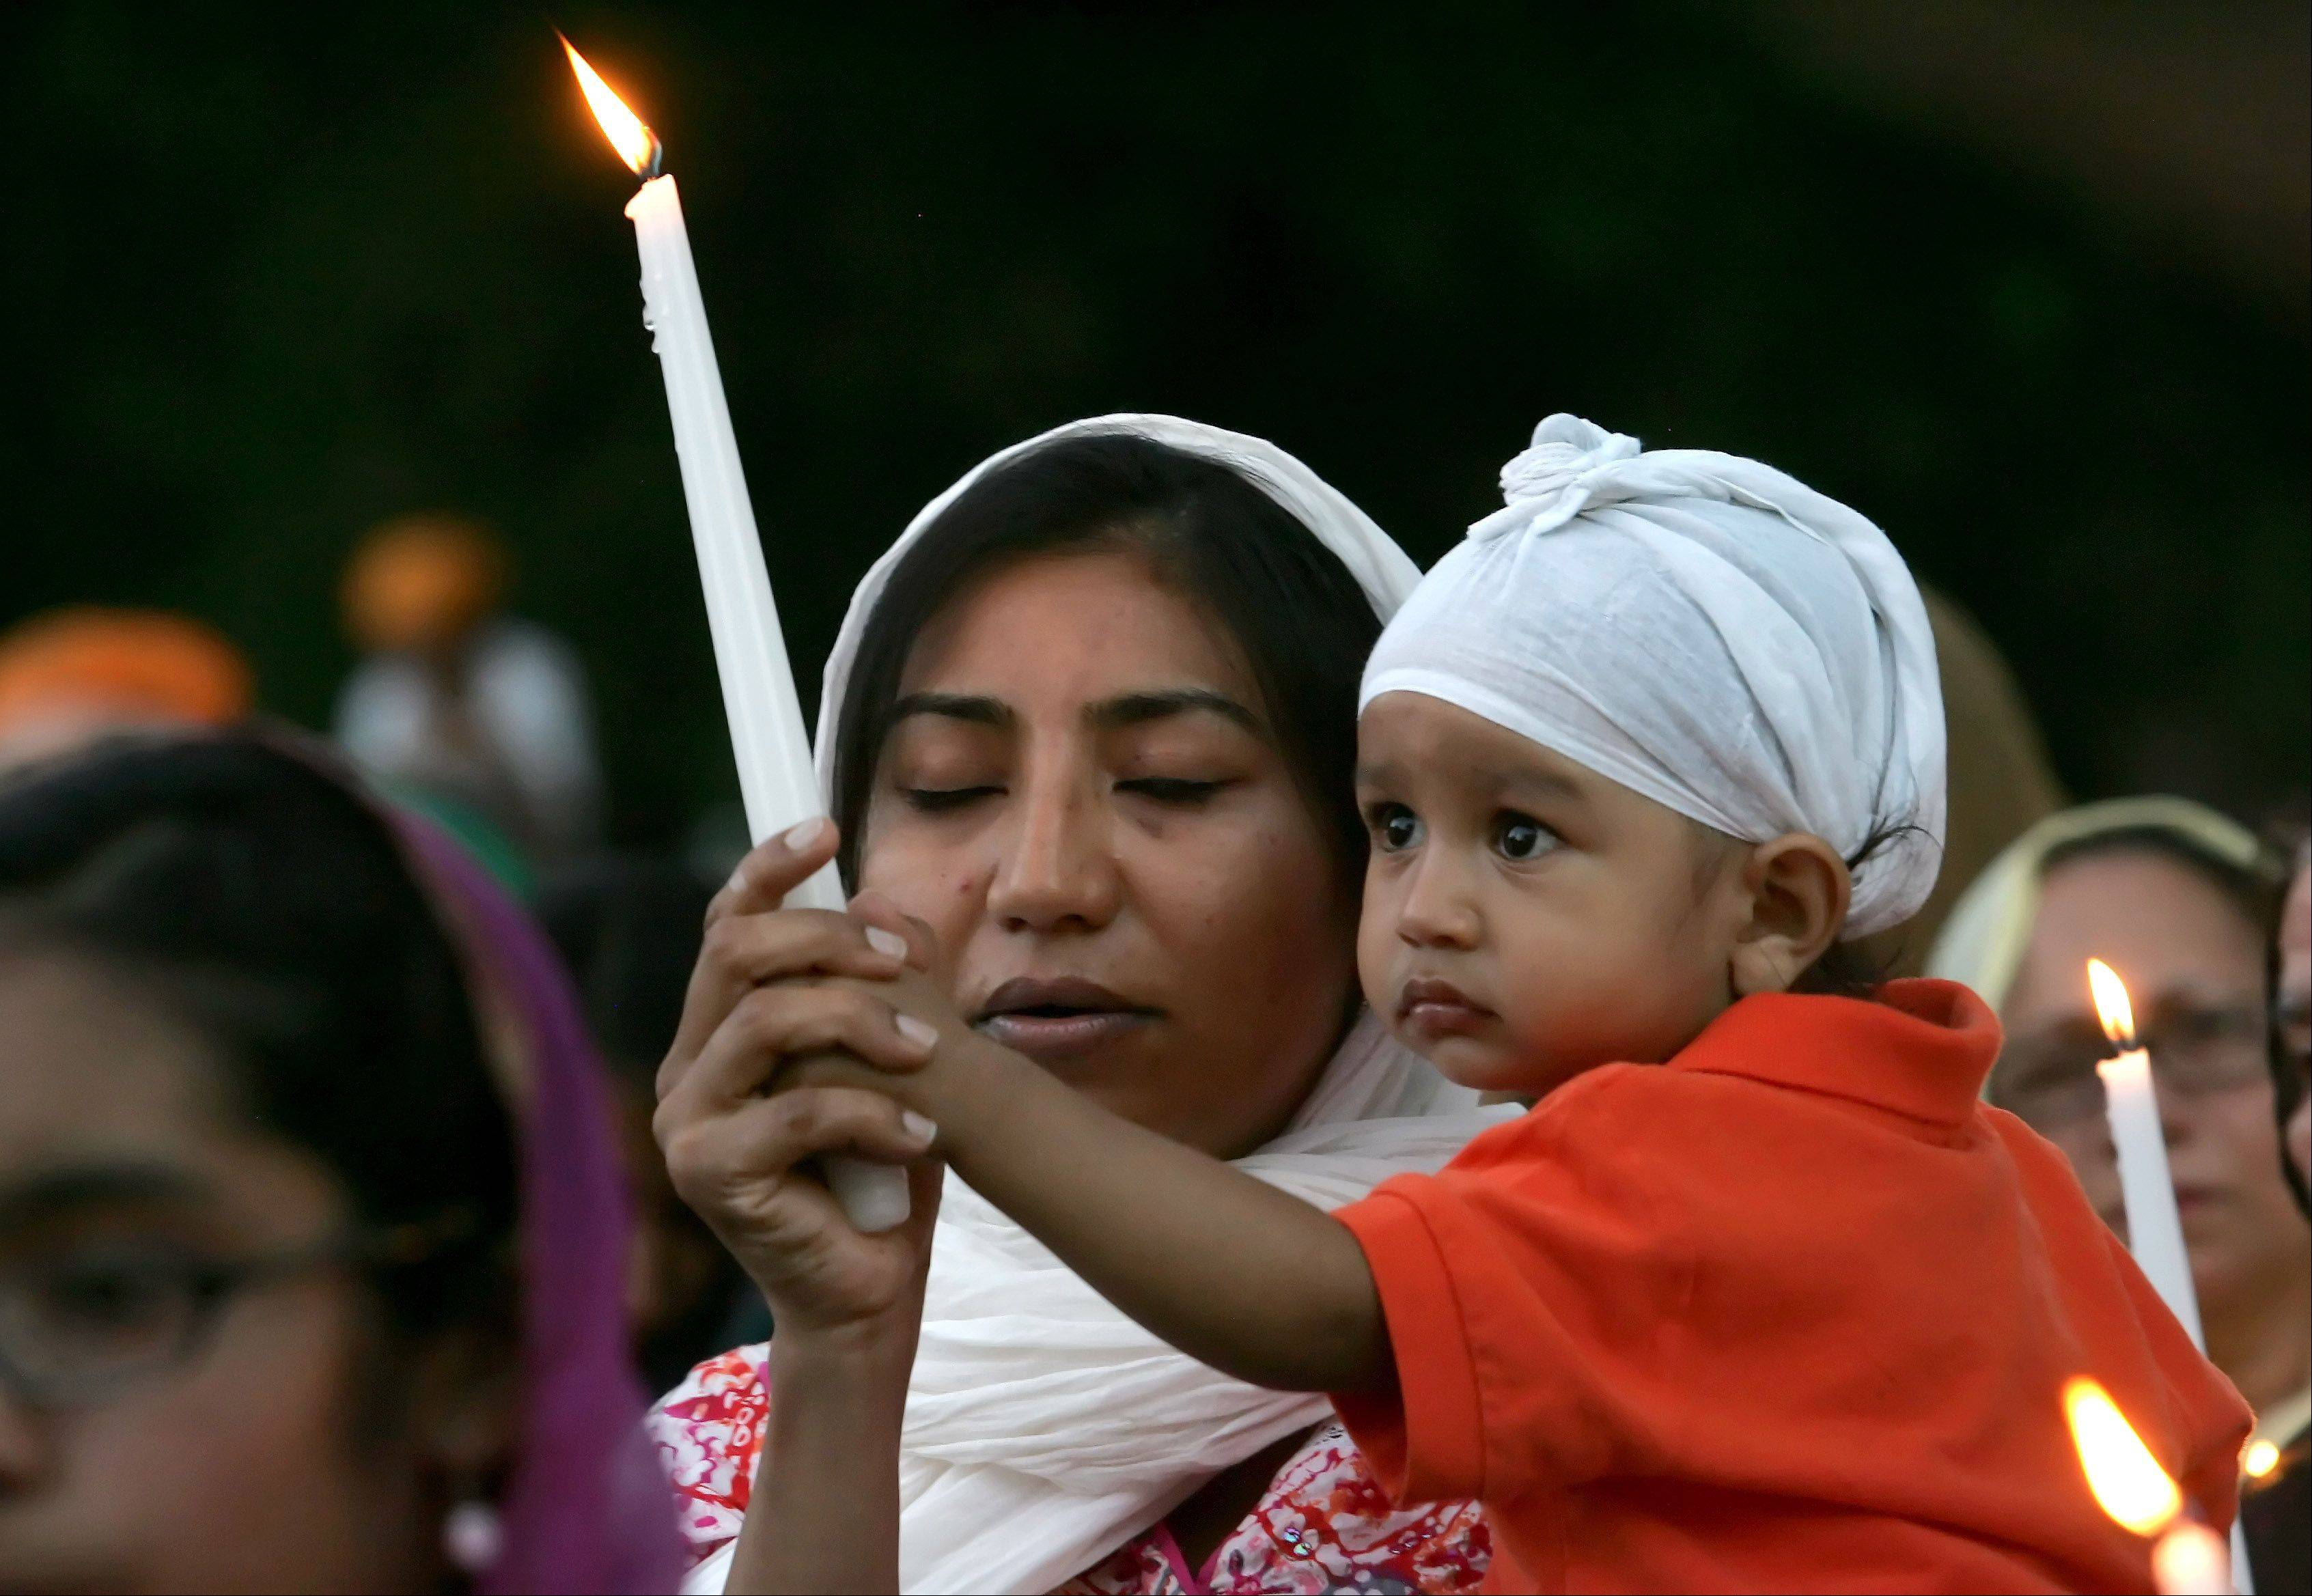 Kawal Preet and her son Prabhnek, 15 months, visiting from San Francisco, take part in the candlelight vigil at Illinois Sikh Communty Center in Wheaton last night.